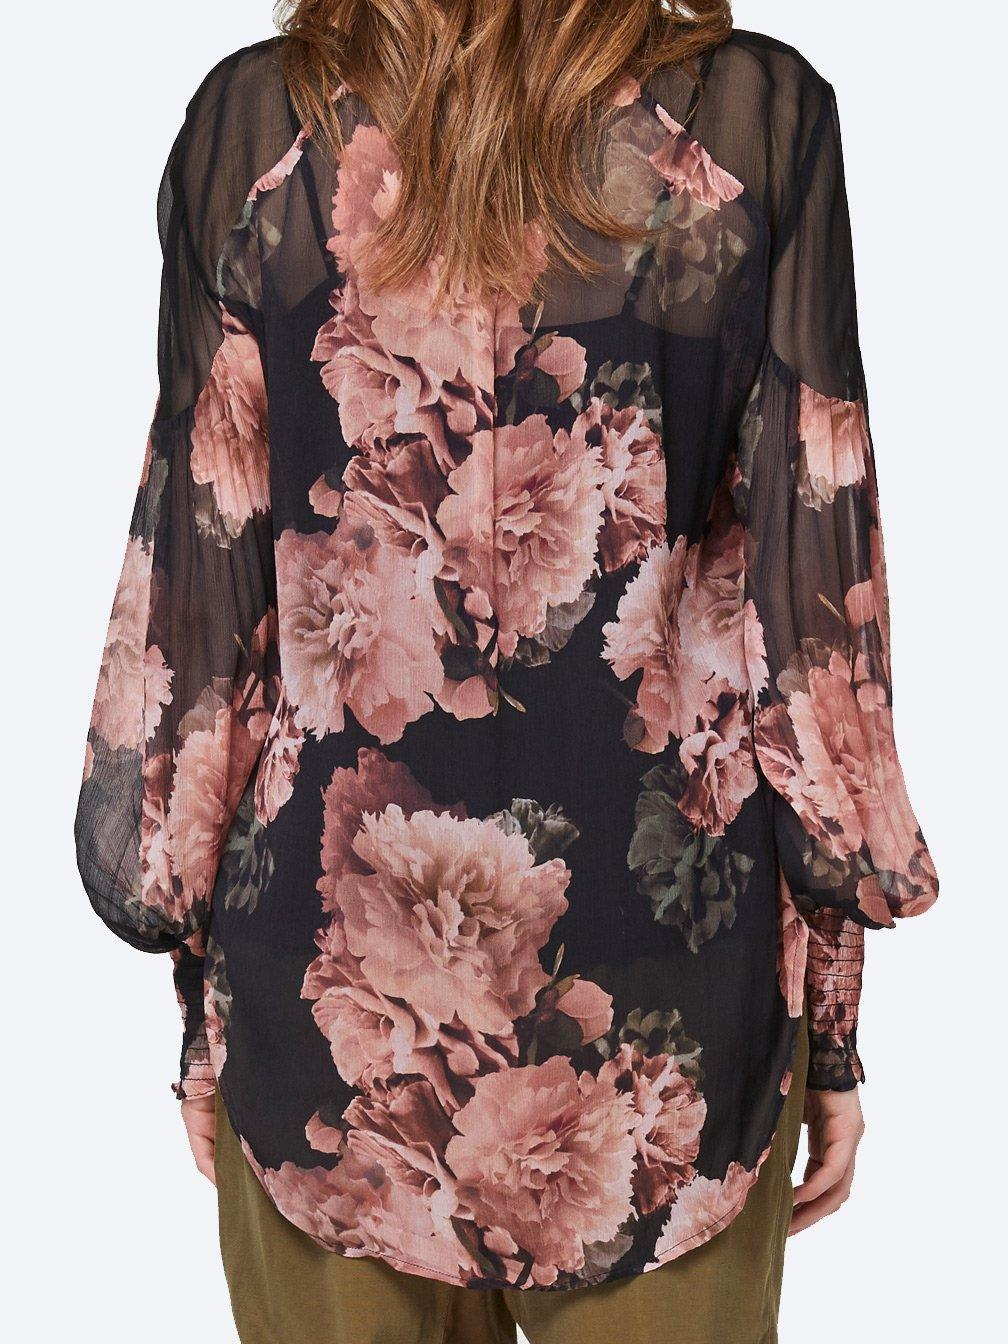 ONCEWAS MAYFAIR CHIFFON TOP